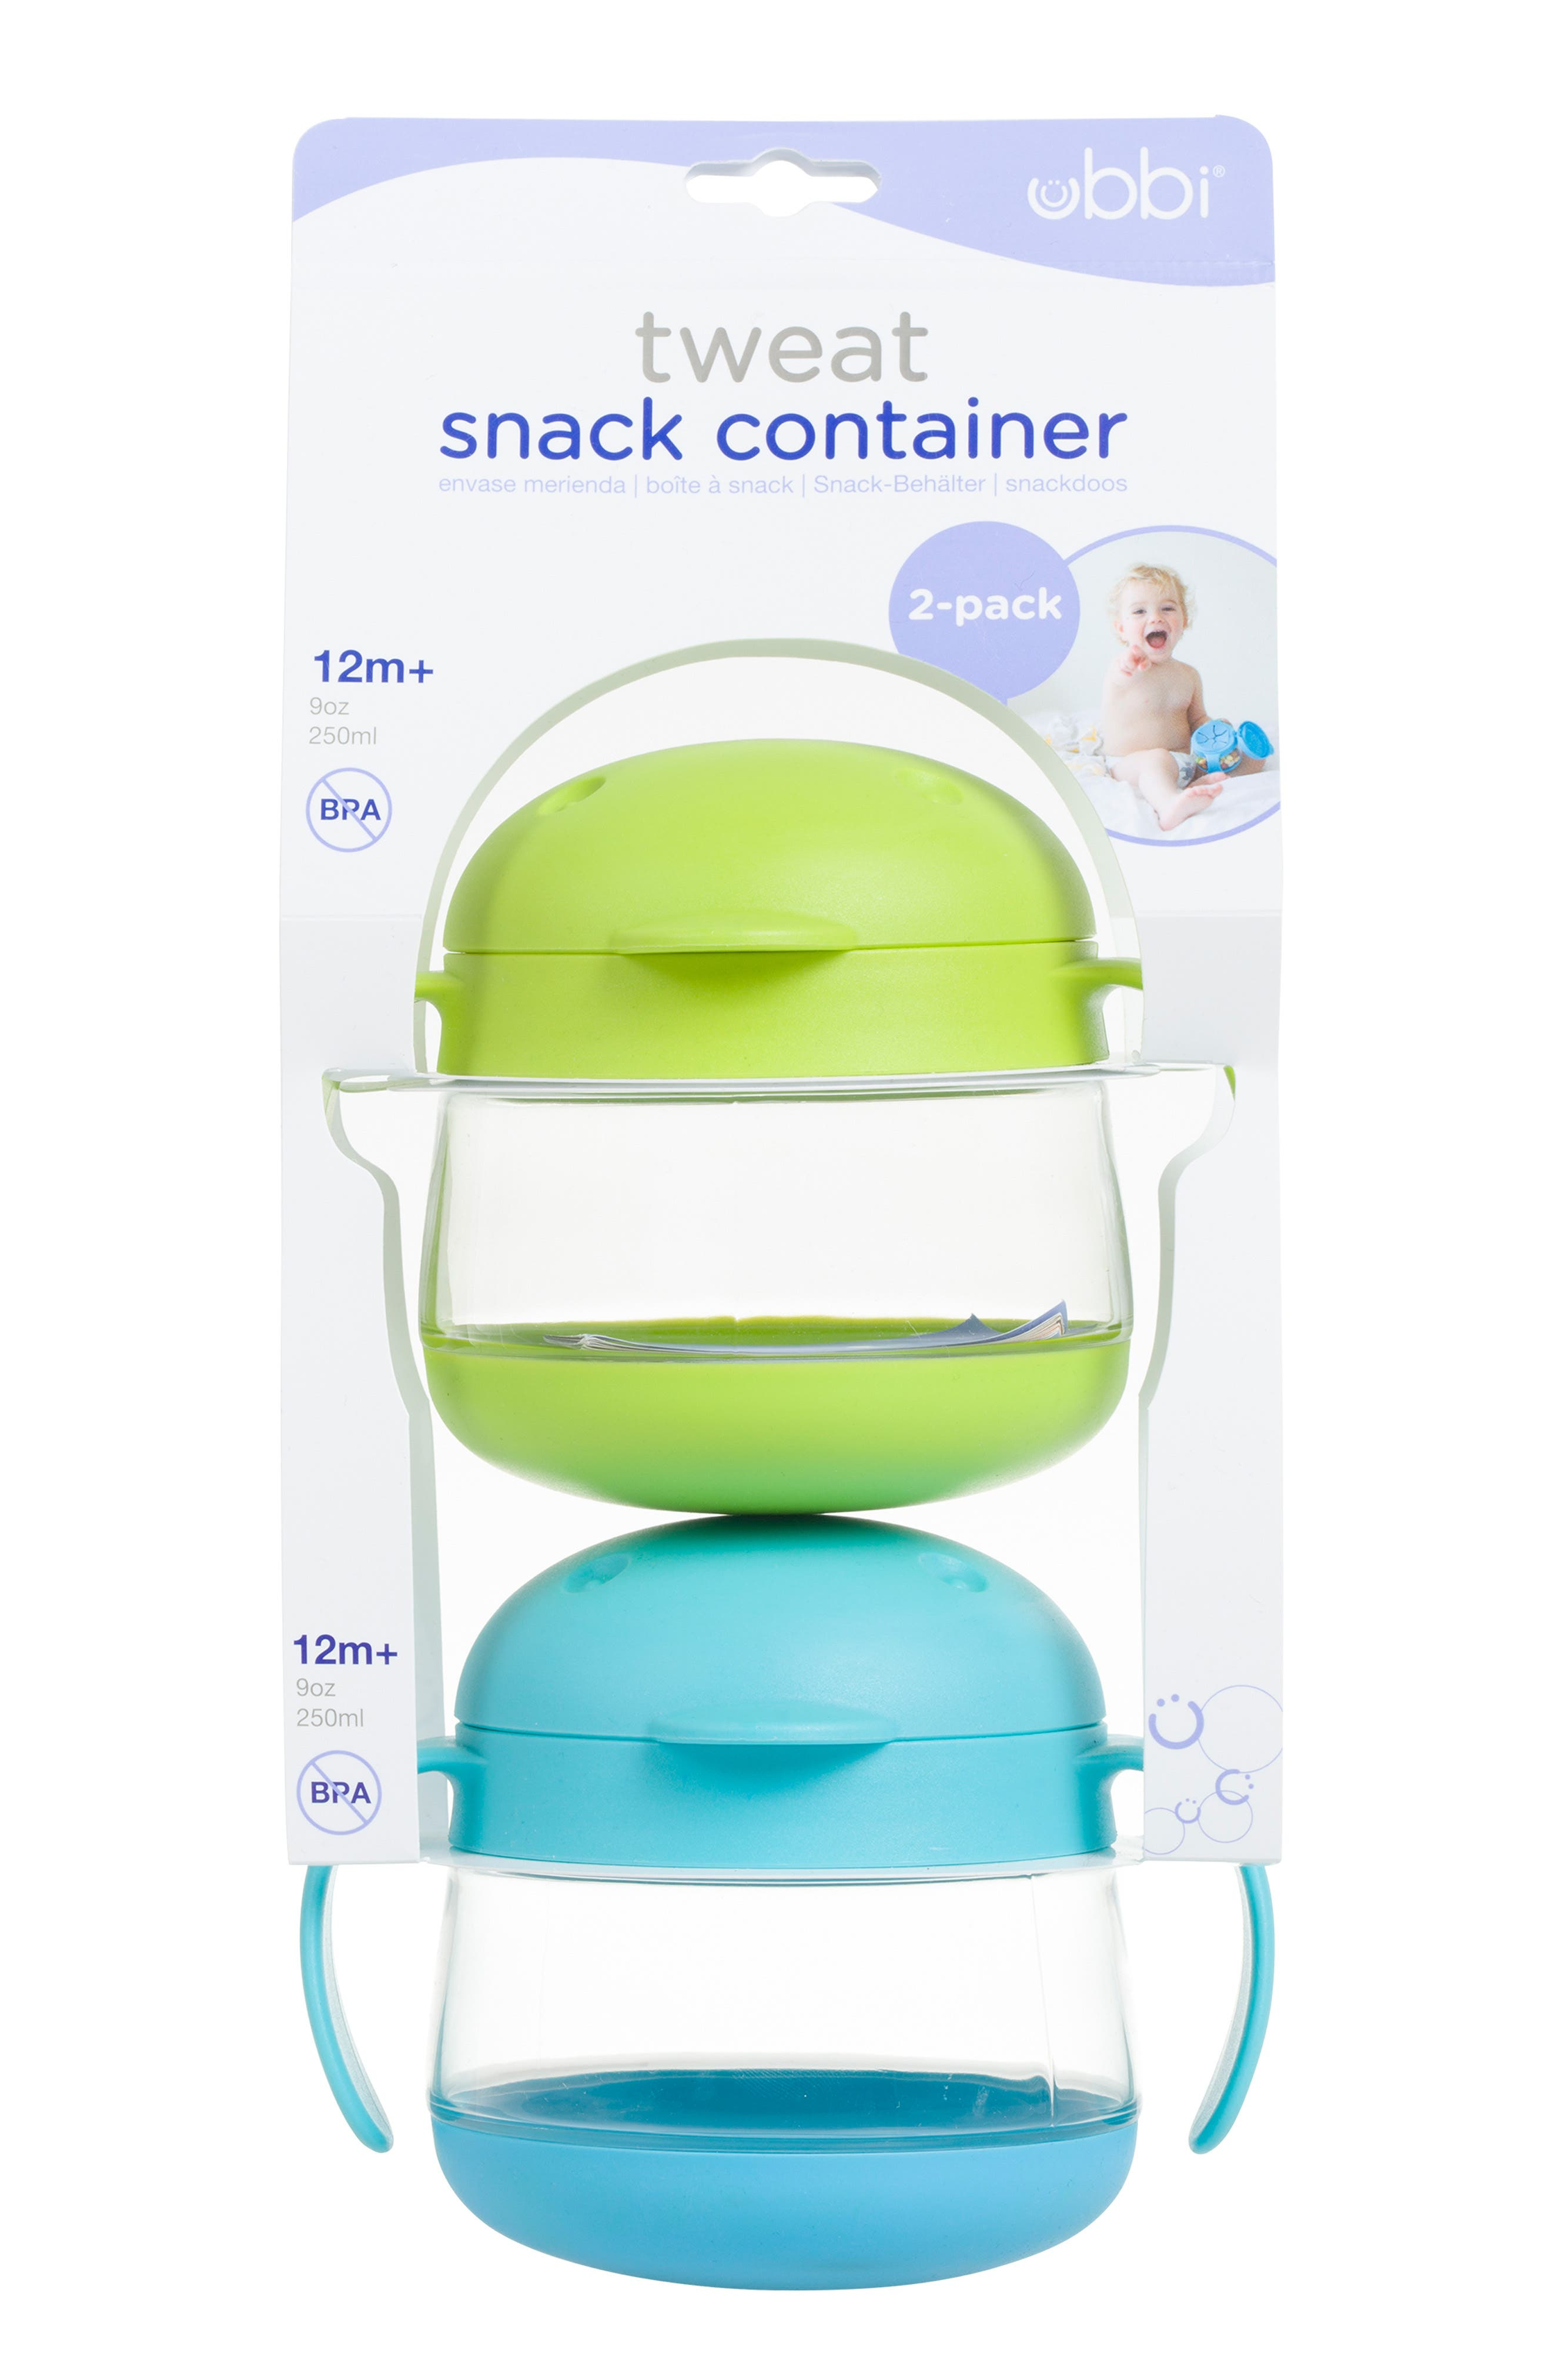 Tweat 2-Pack Snack Container,                             Main thumbnail 1, color,                             GREEN/ BLUE